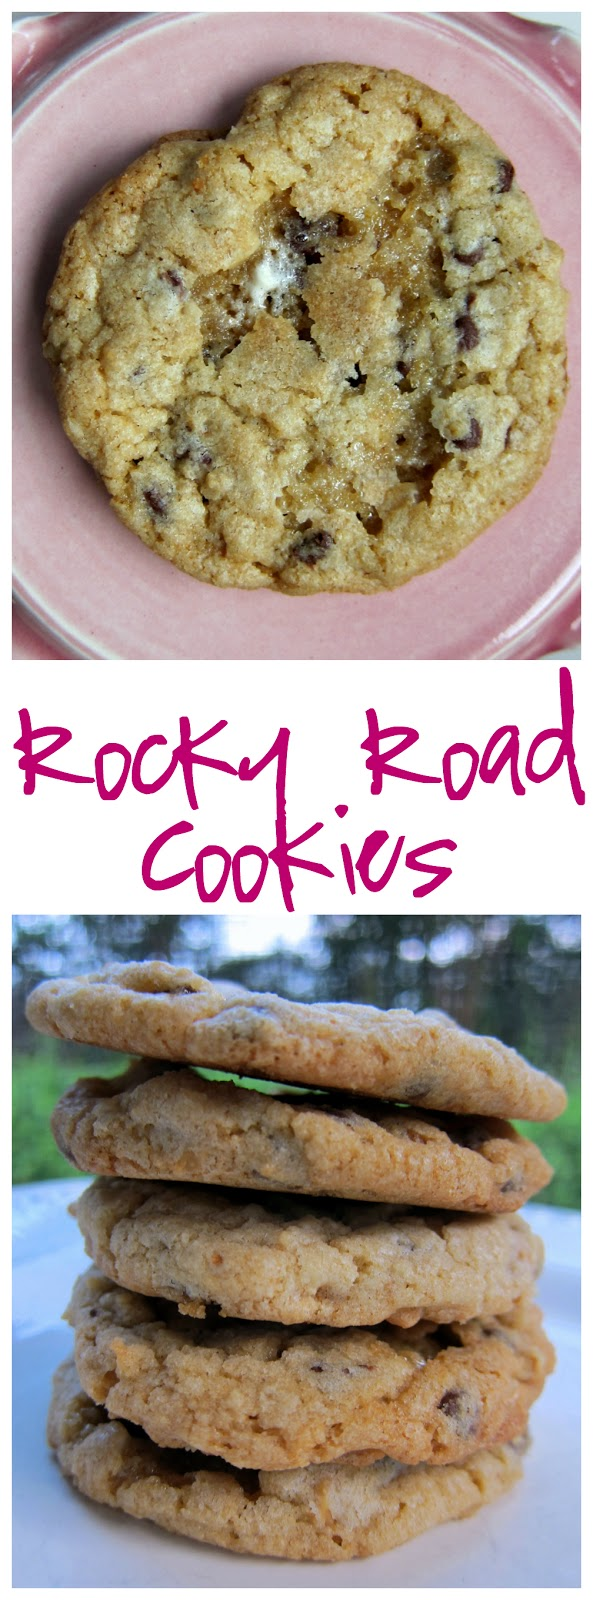 Rocky Road Cookies Recipe - cookies packed with chocolate chips, butterscotch chips, pecans and marshmallows. We couldn't stop eating these! I wanted to eat the whole batch!